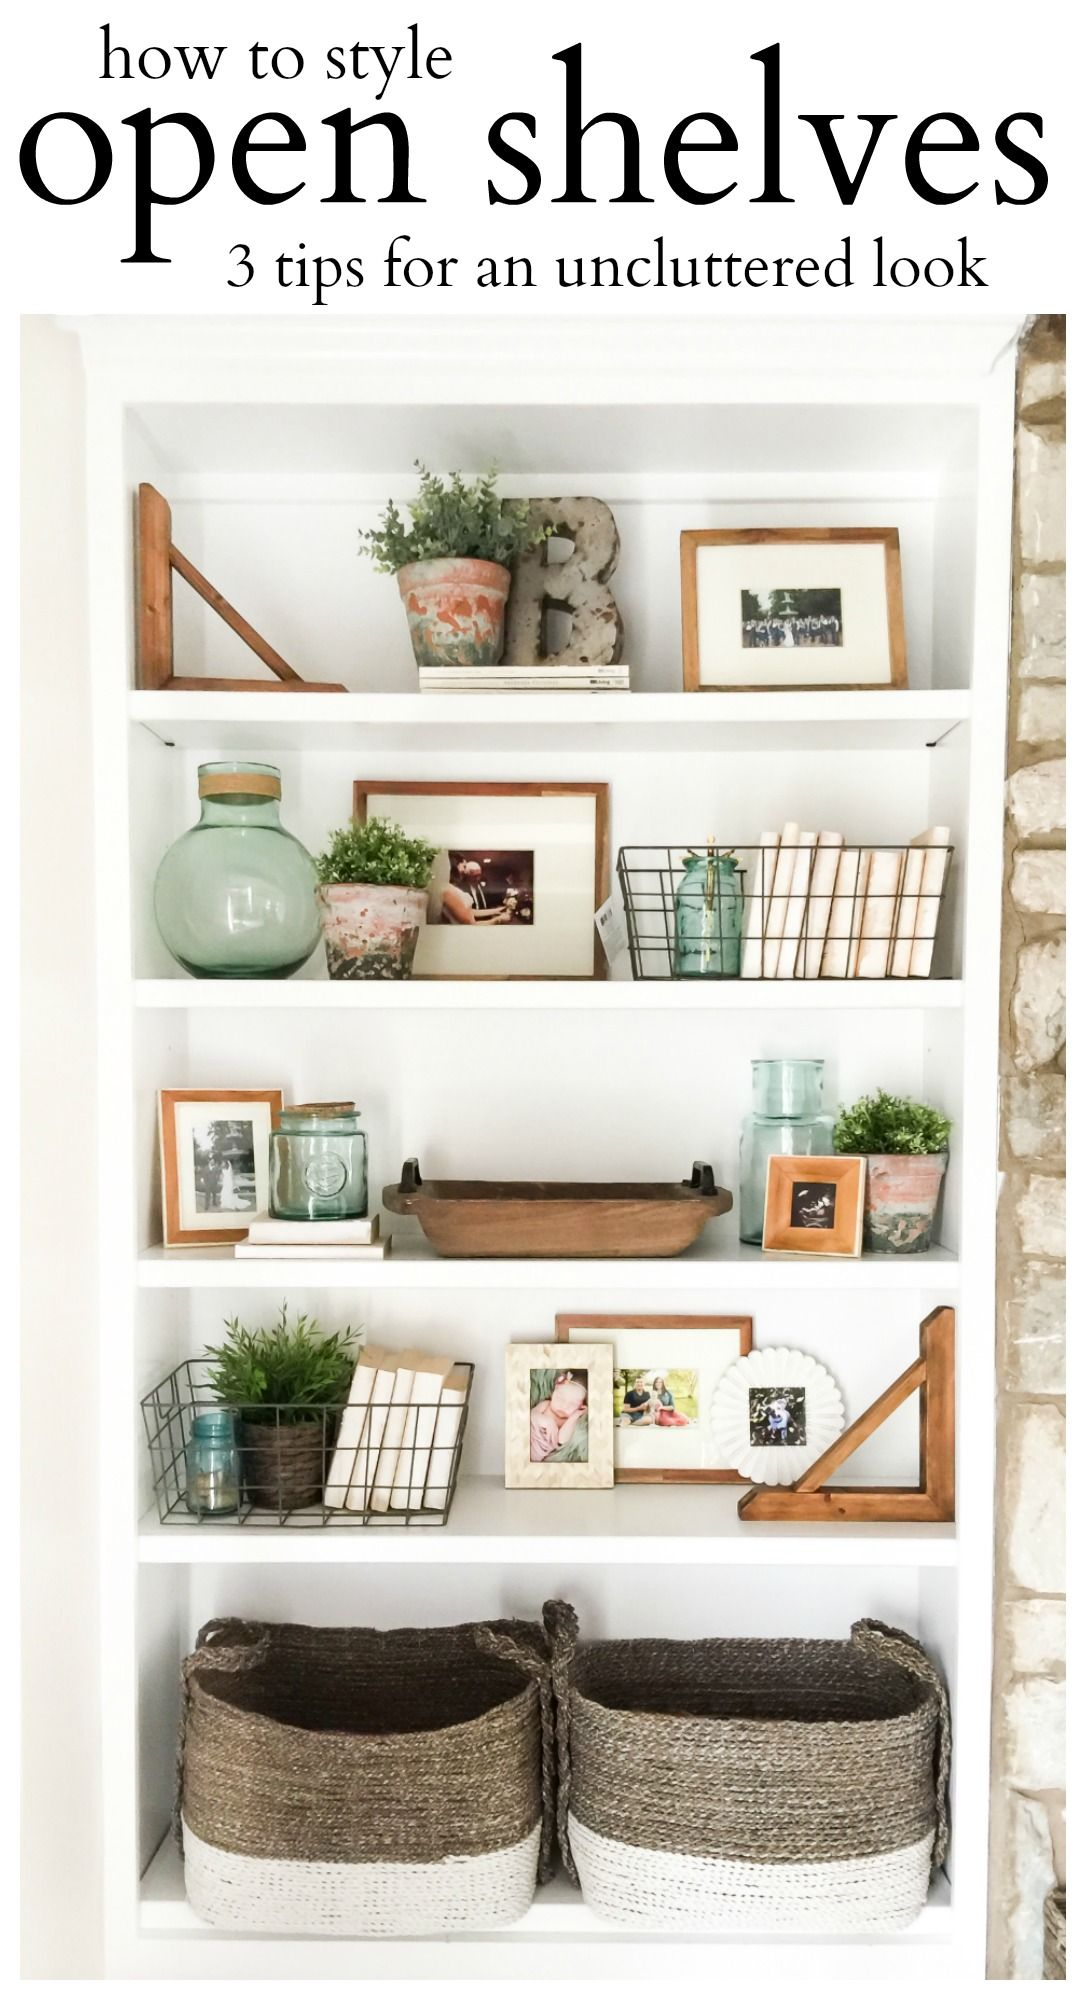 How To Style Open Shelves 3 Tips For An Uncluttered Look House By Hoff Bookcase Decor Living Room Shelves Shelf Decor Living Room